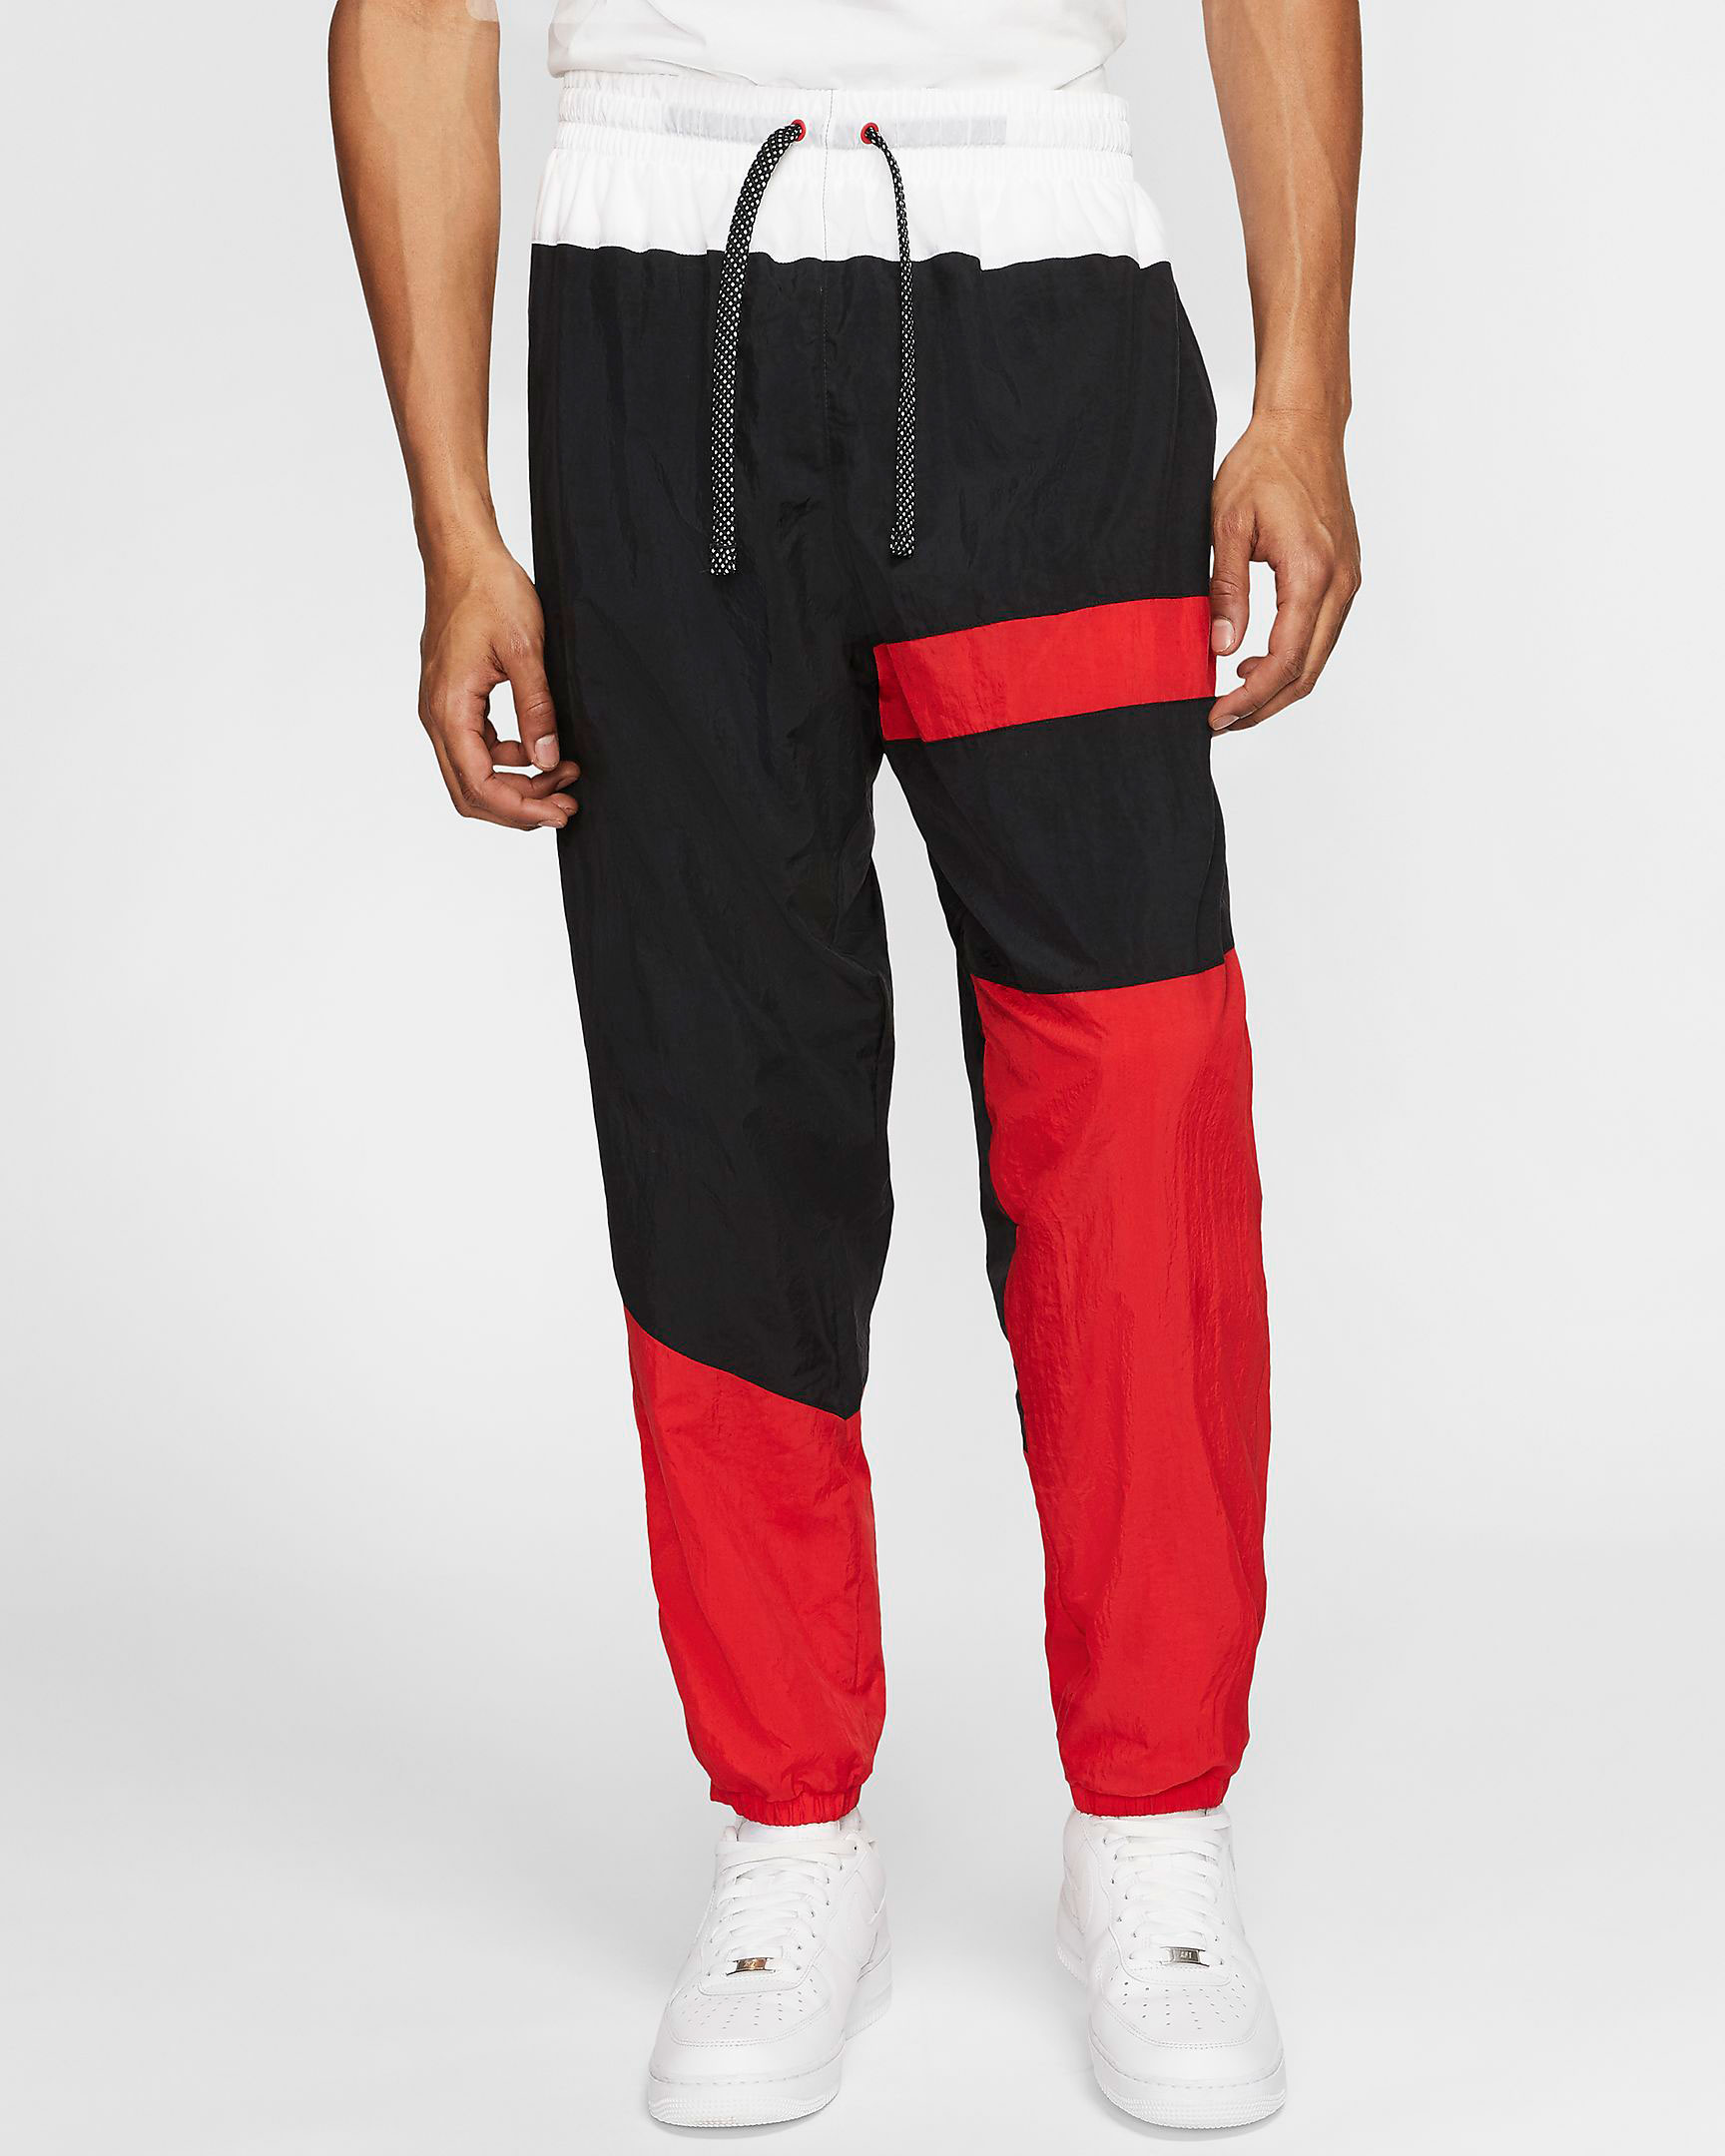 jordan-5-fire-red-nike-flight-pants-1